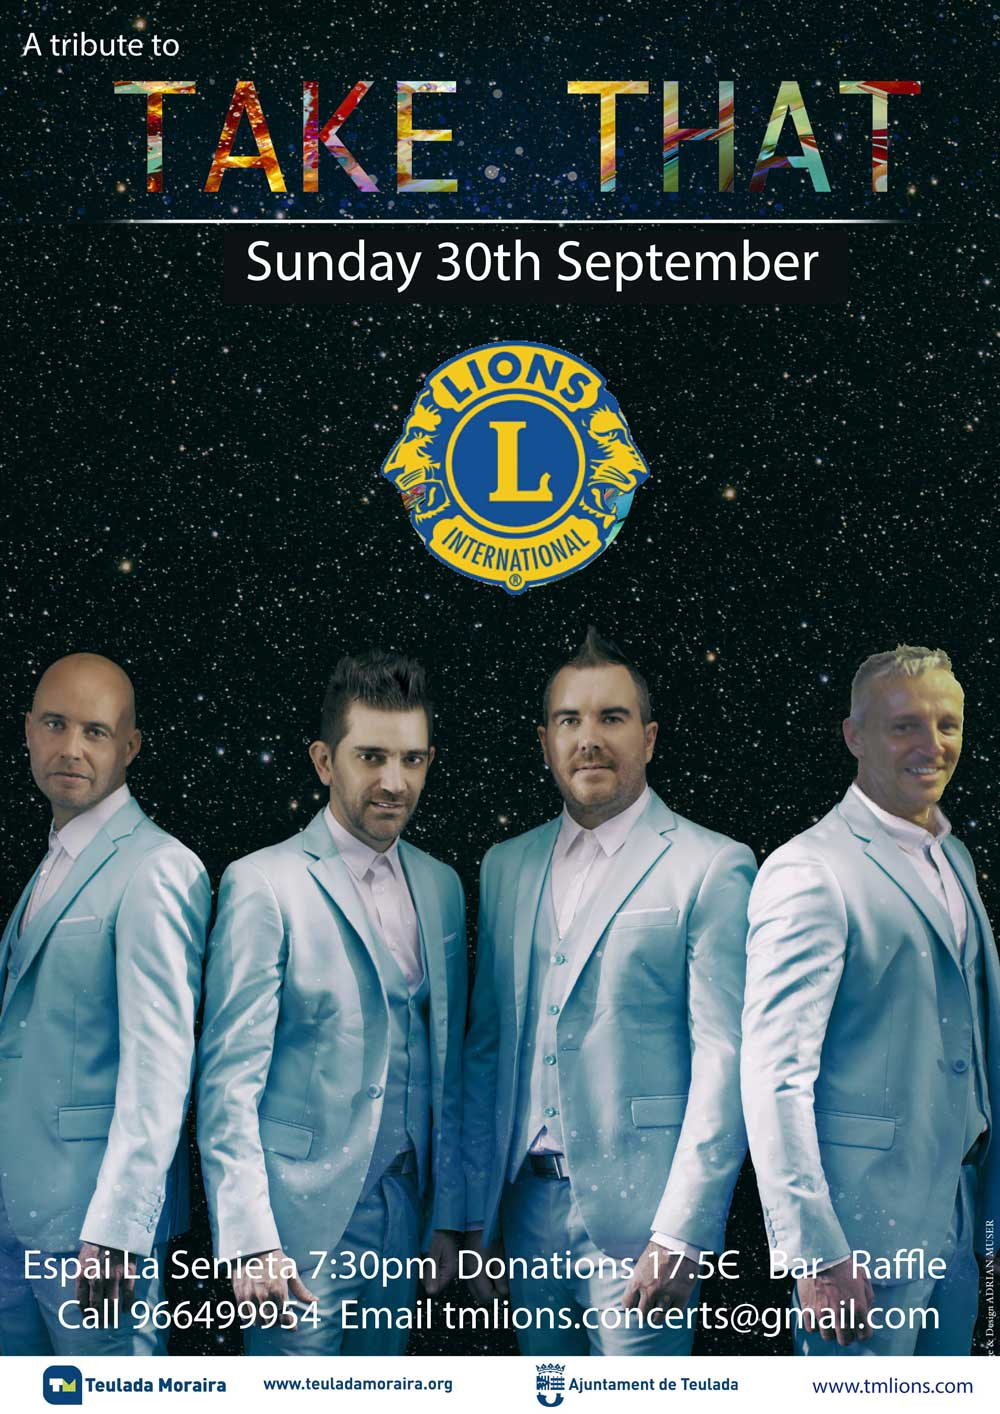 A Tribute to Take That 30 sept. 2018